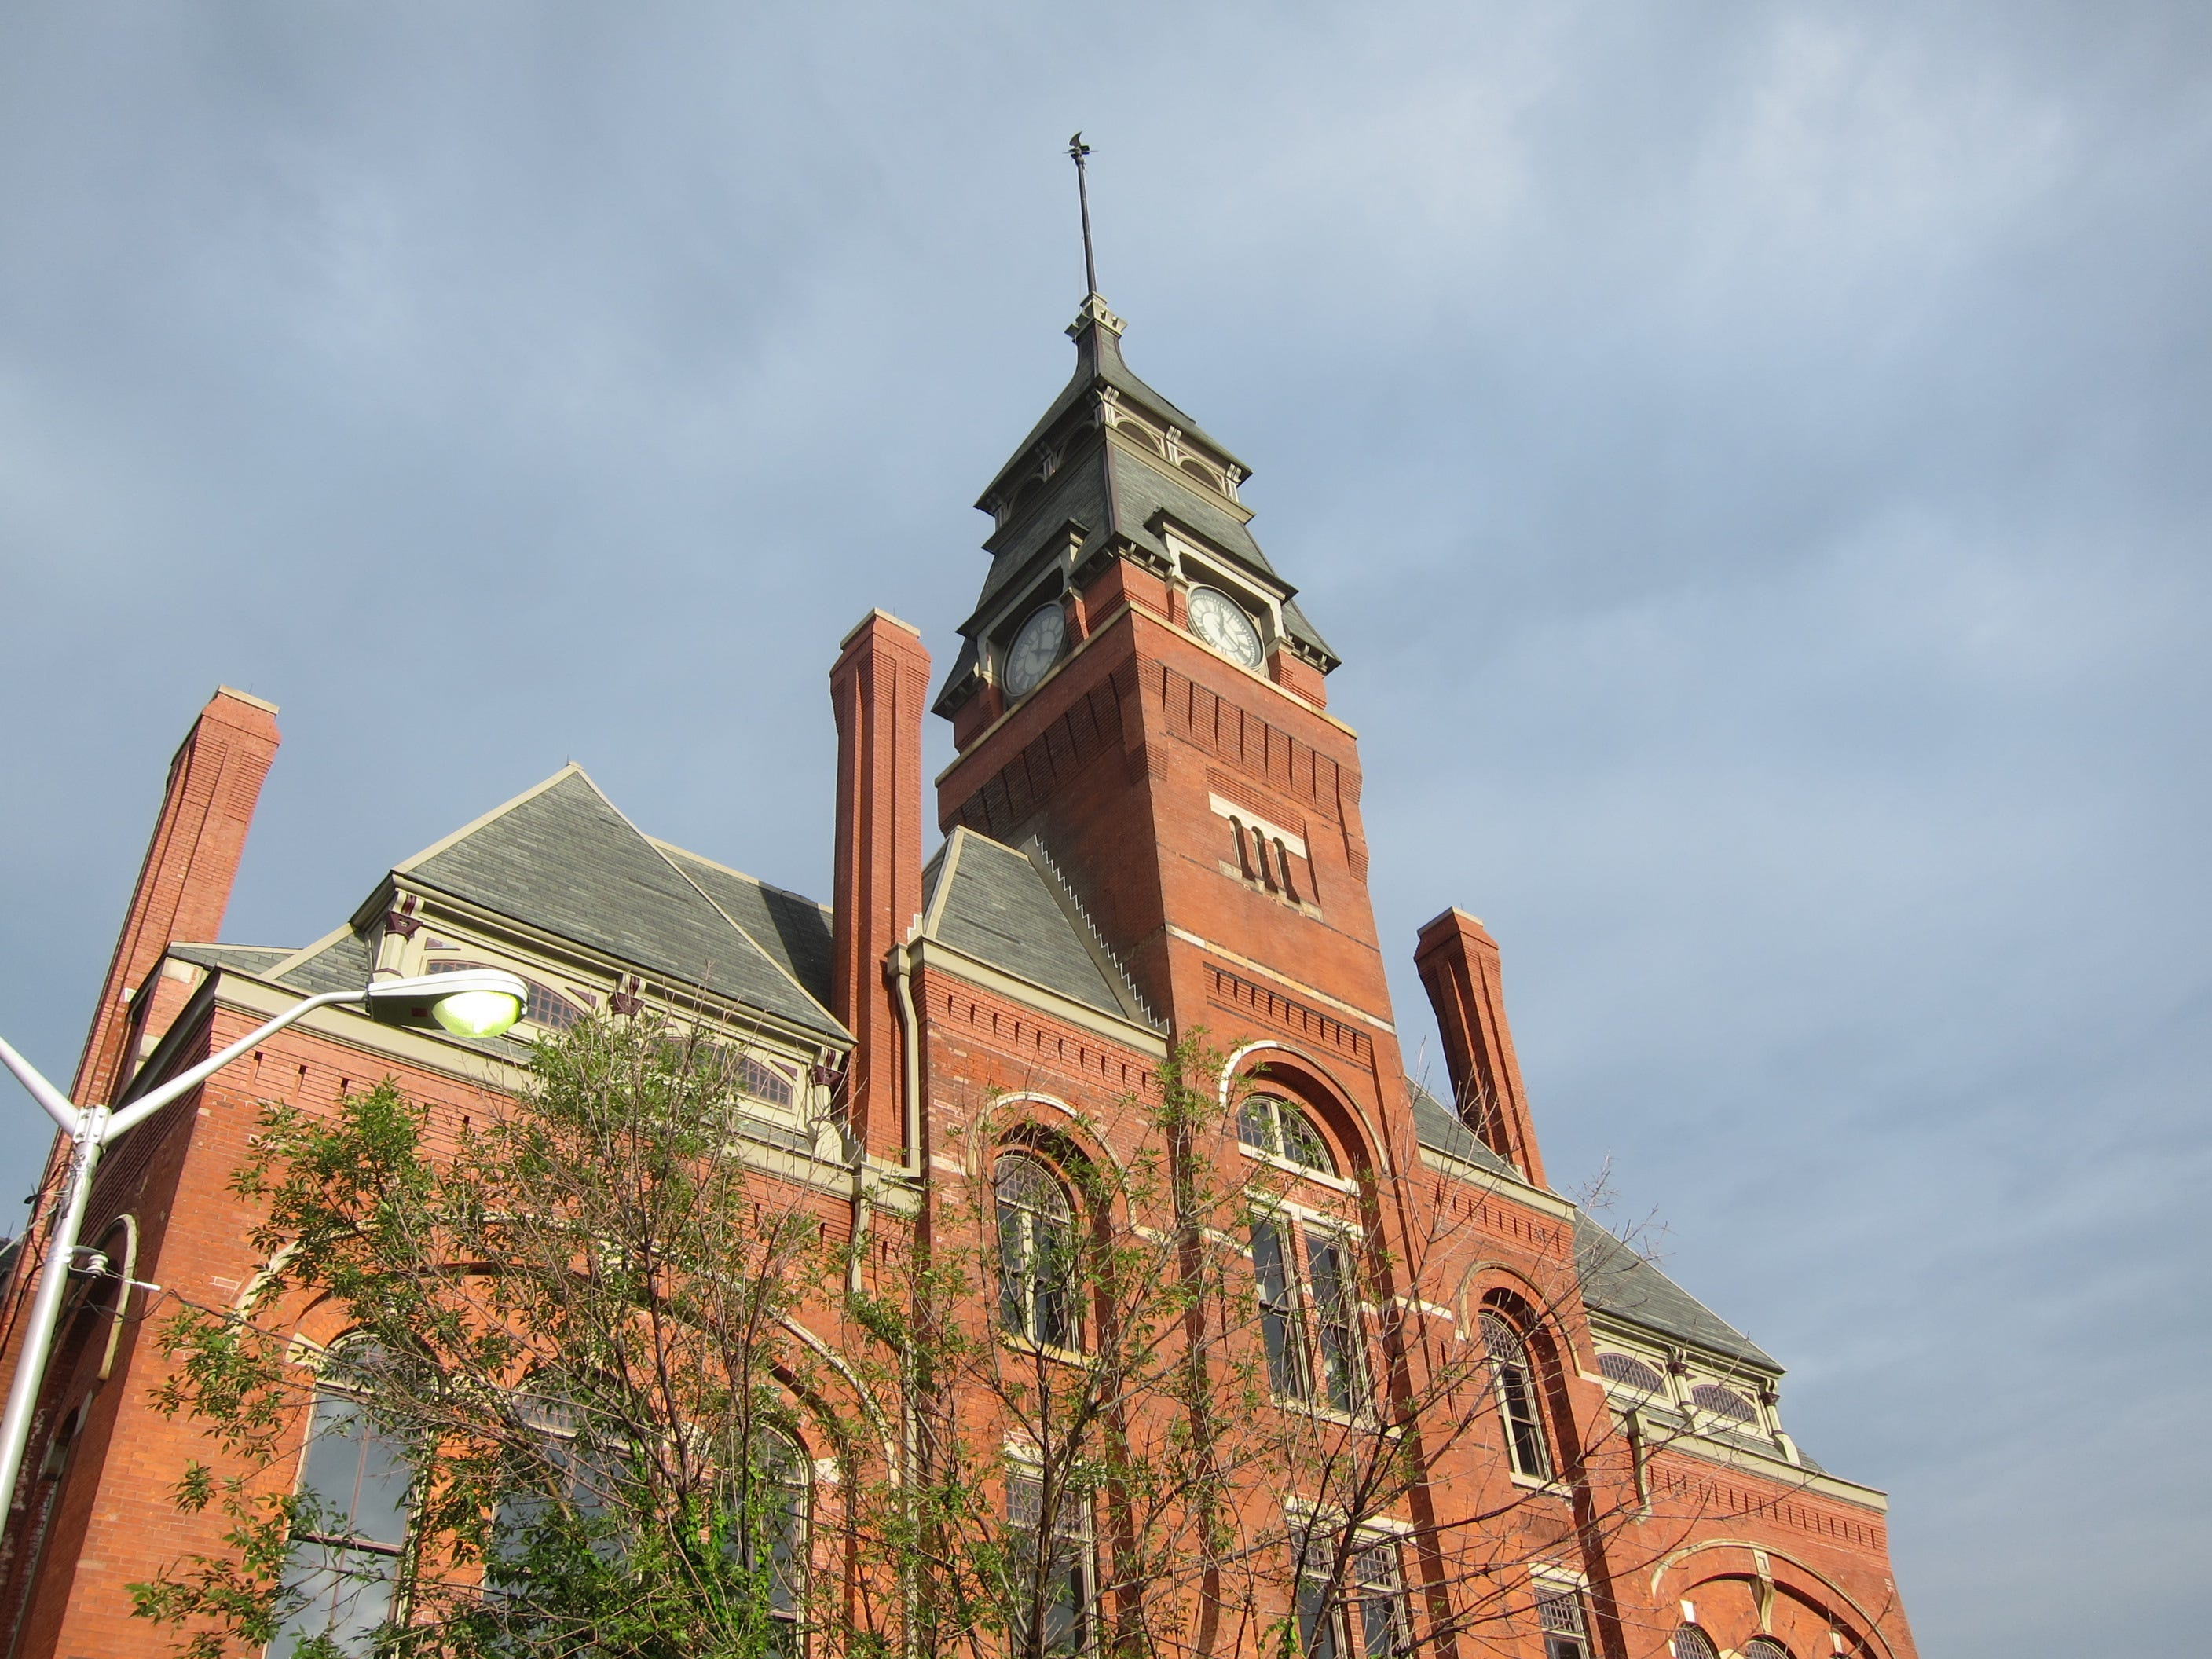 The Pullman Clock Tower and Administration Building is the iconic symbol of the Pullman National Monument.